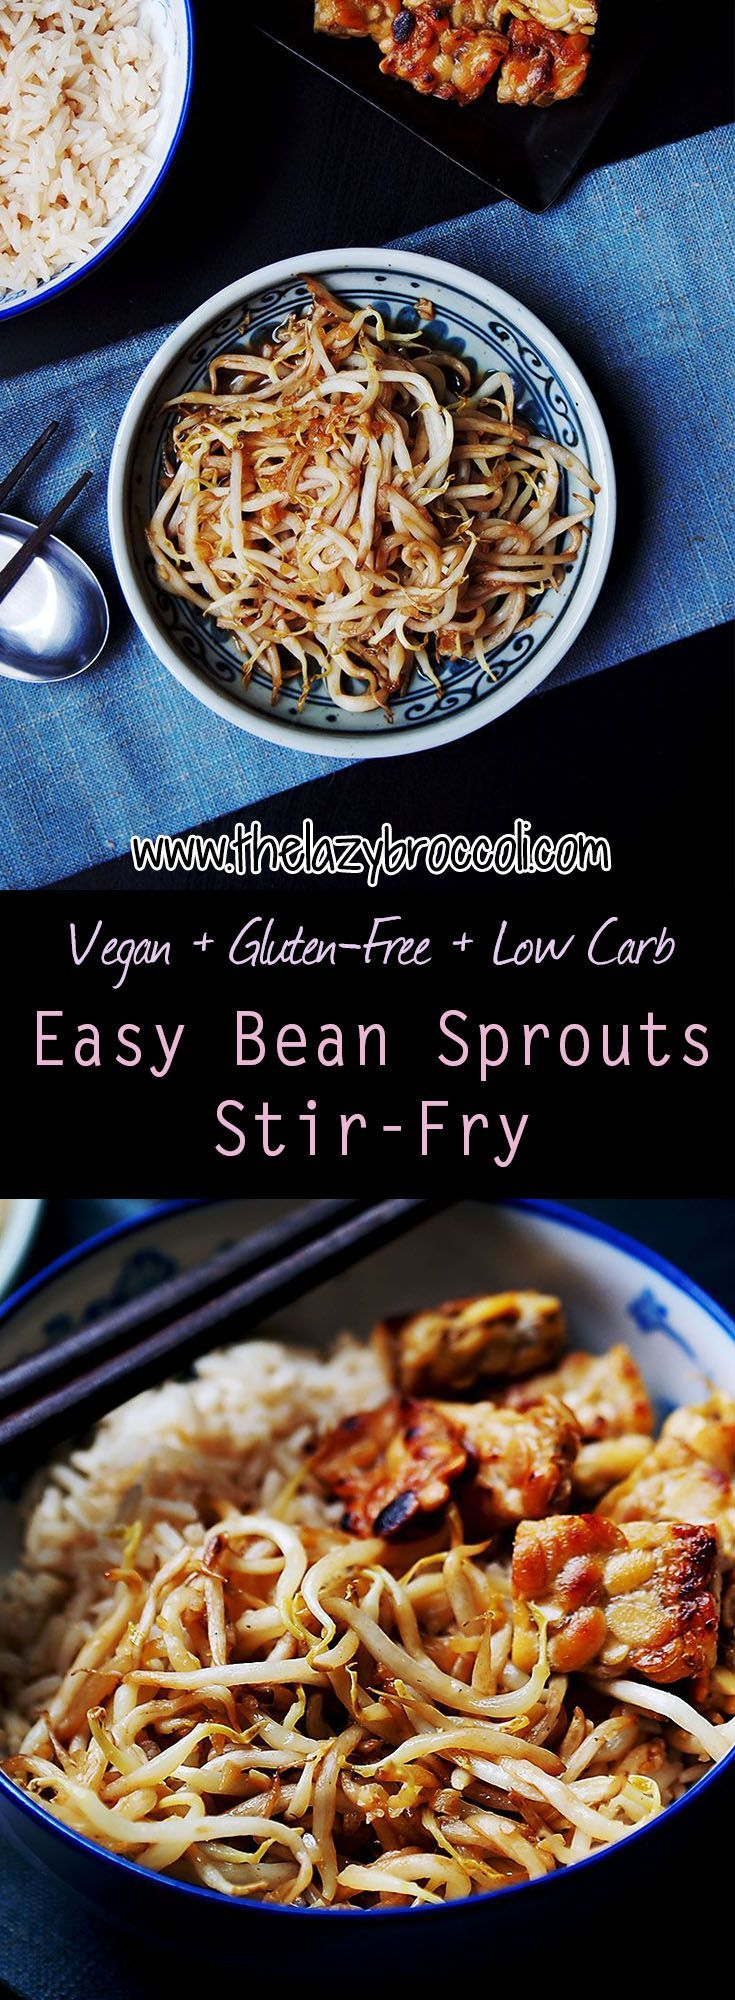 This vegan, gluten free and low carb bean sprouts stir-fry is super easy and really cheap! Less than 5 ingredients and under 10 minutes - perfect for the lazy vegan ;)